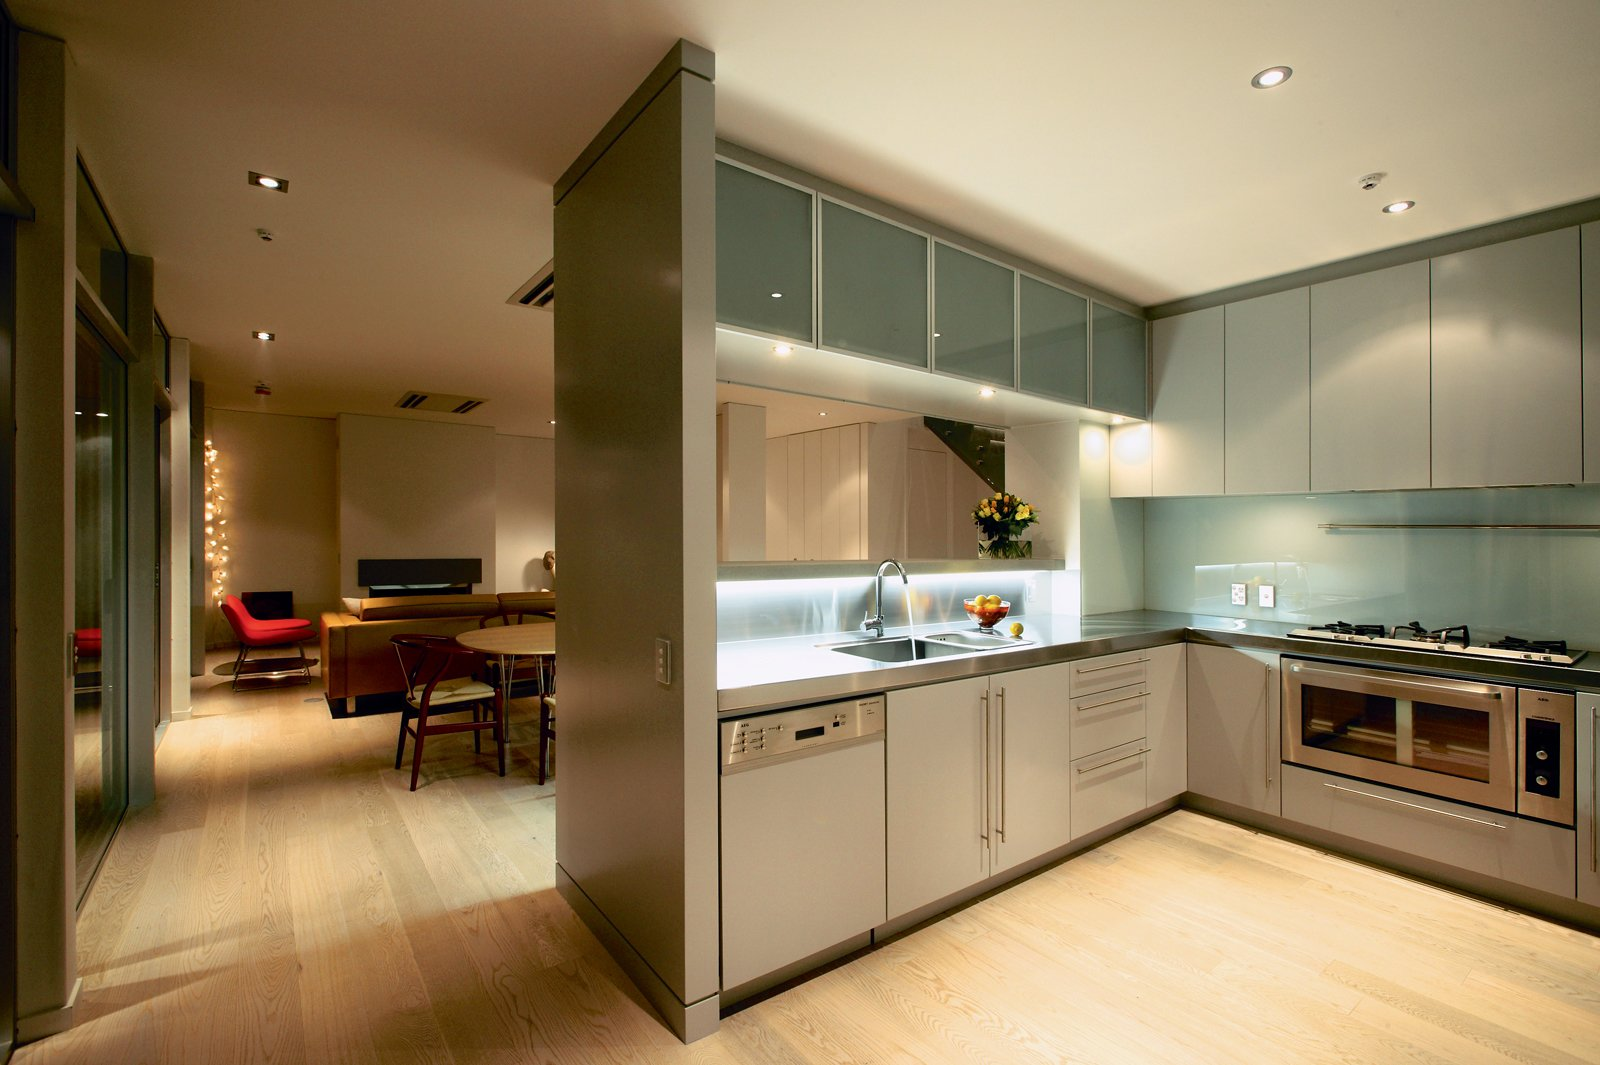 The apartments range from 750 to 2,350 square feet.